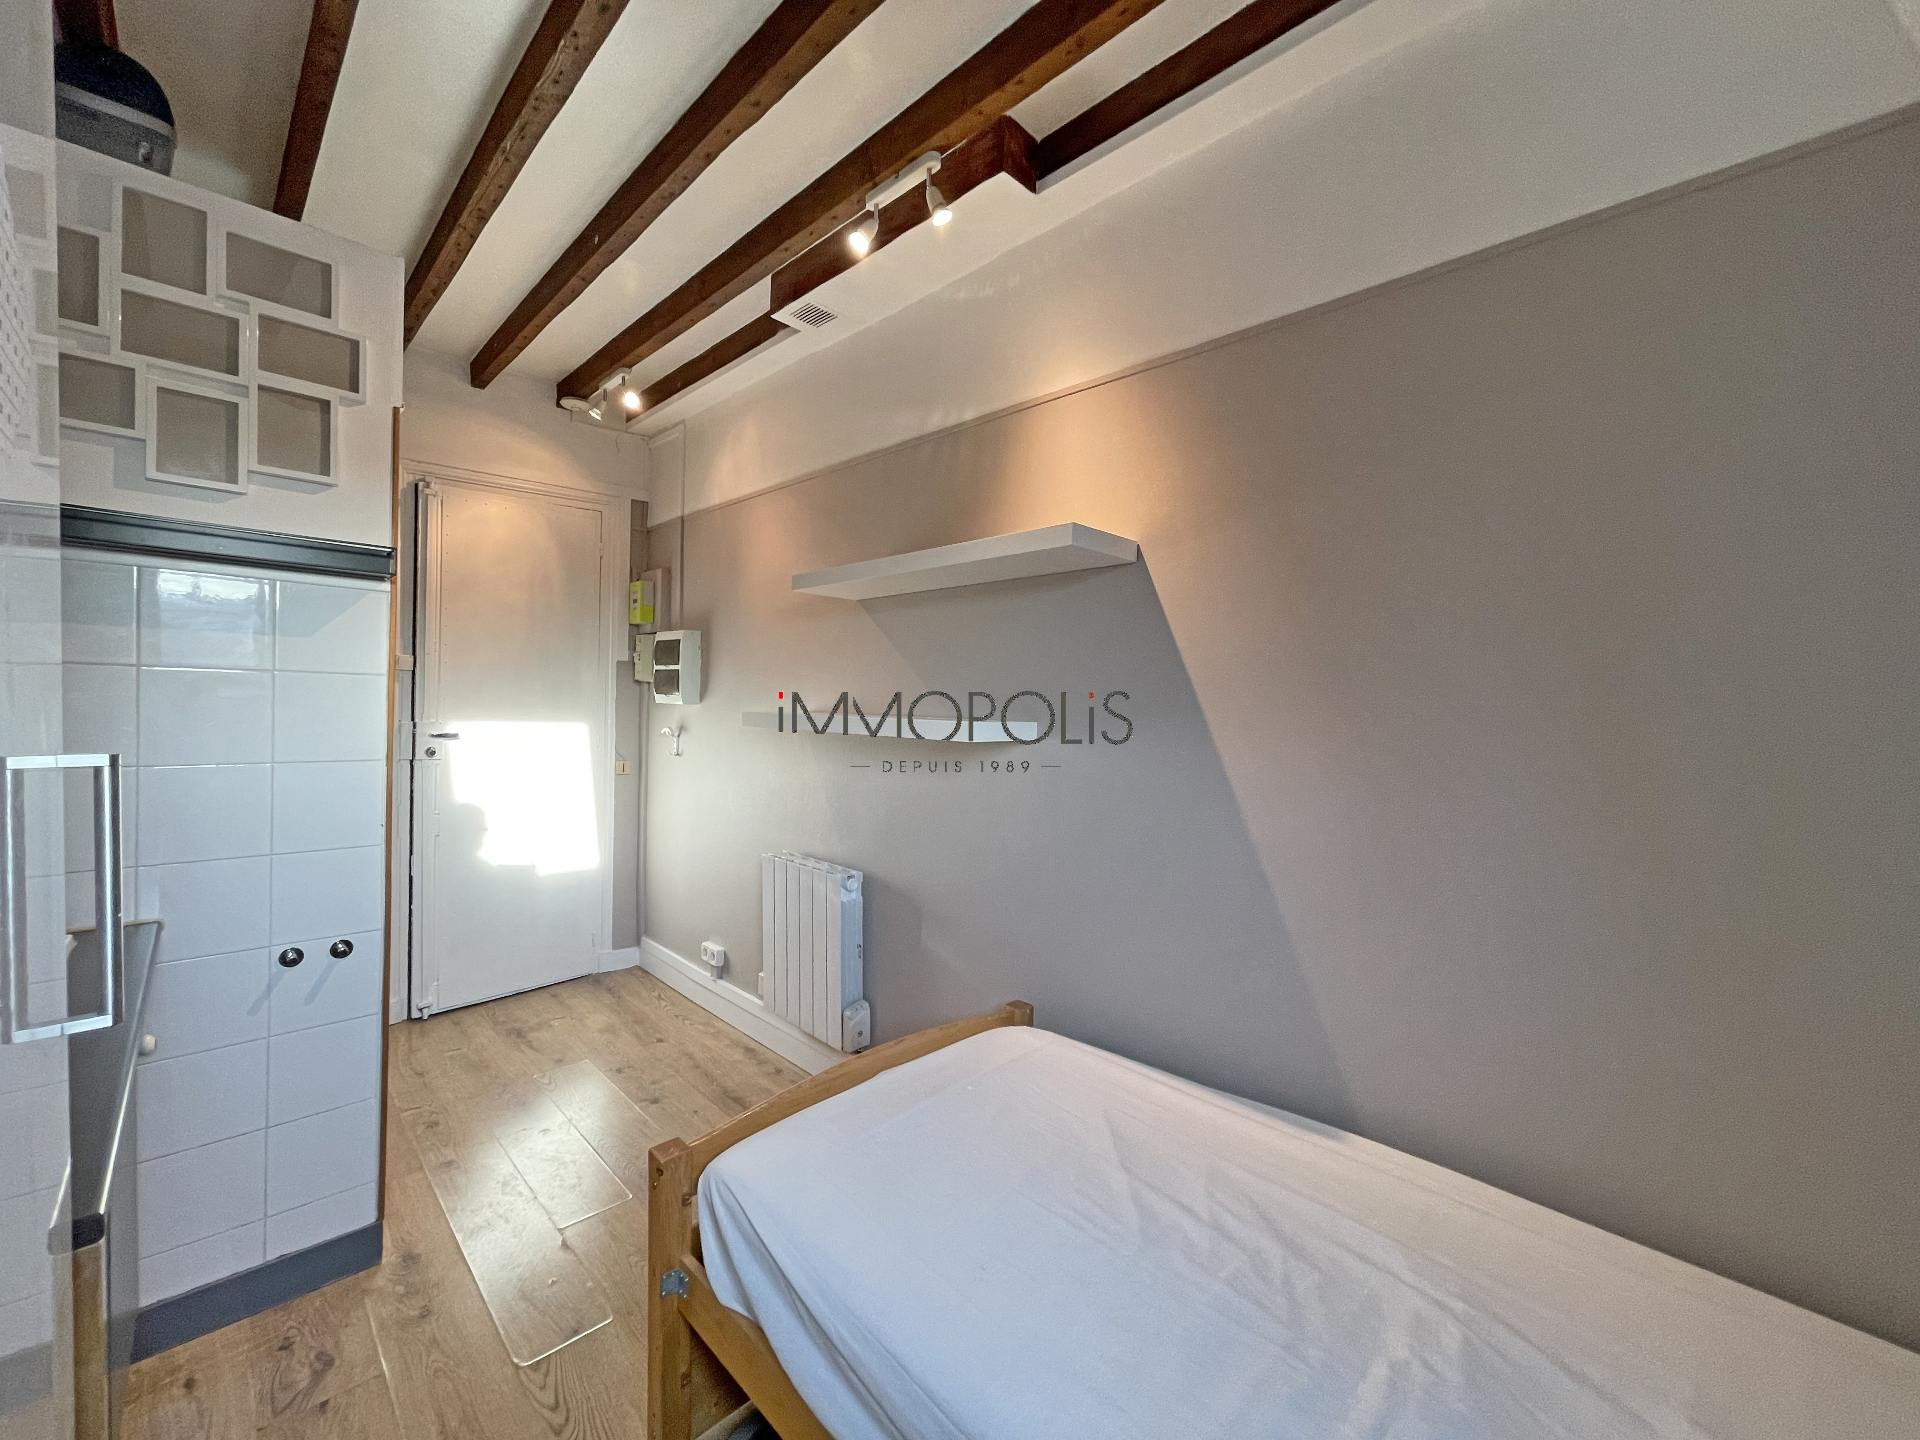 District Europe (rue Clapeyron in the 8th arrondissement), Legally launched studio of 9.88 m² Law Carrez located in a beautiful well maintained building 7